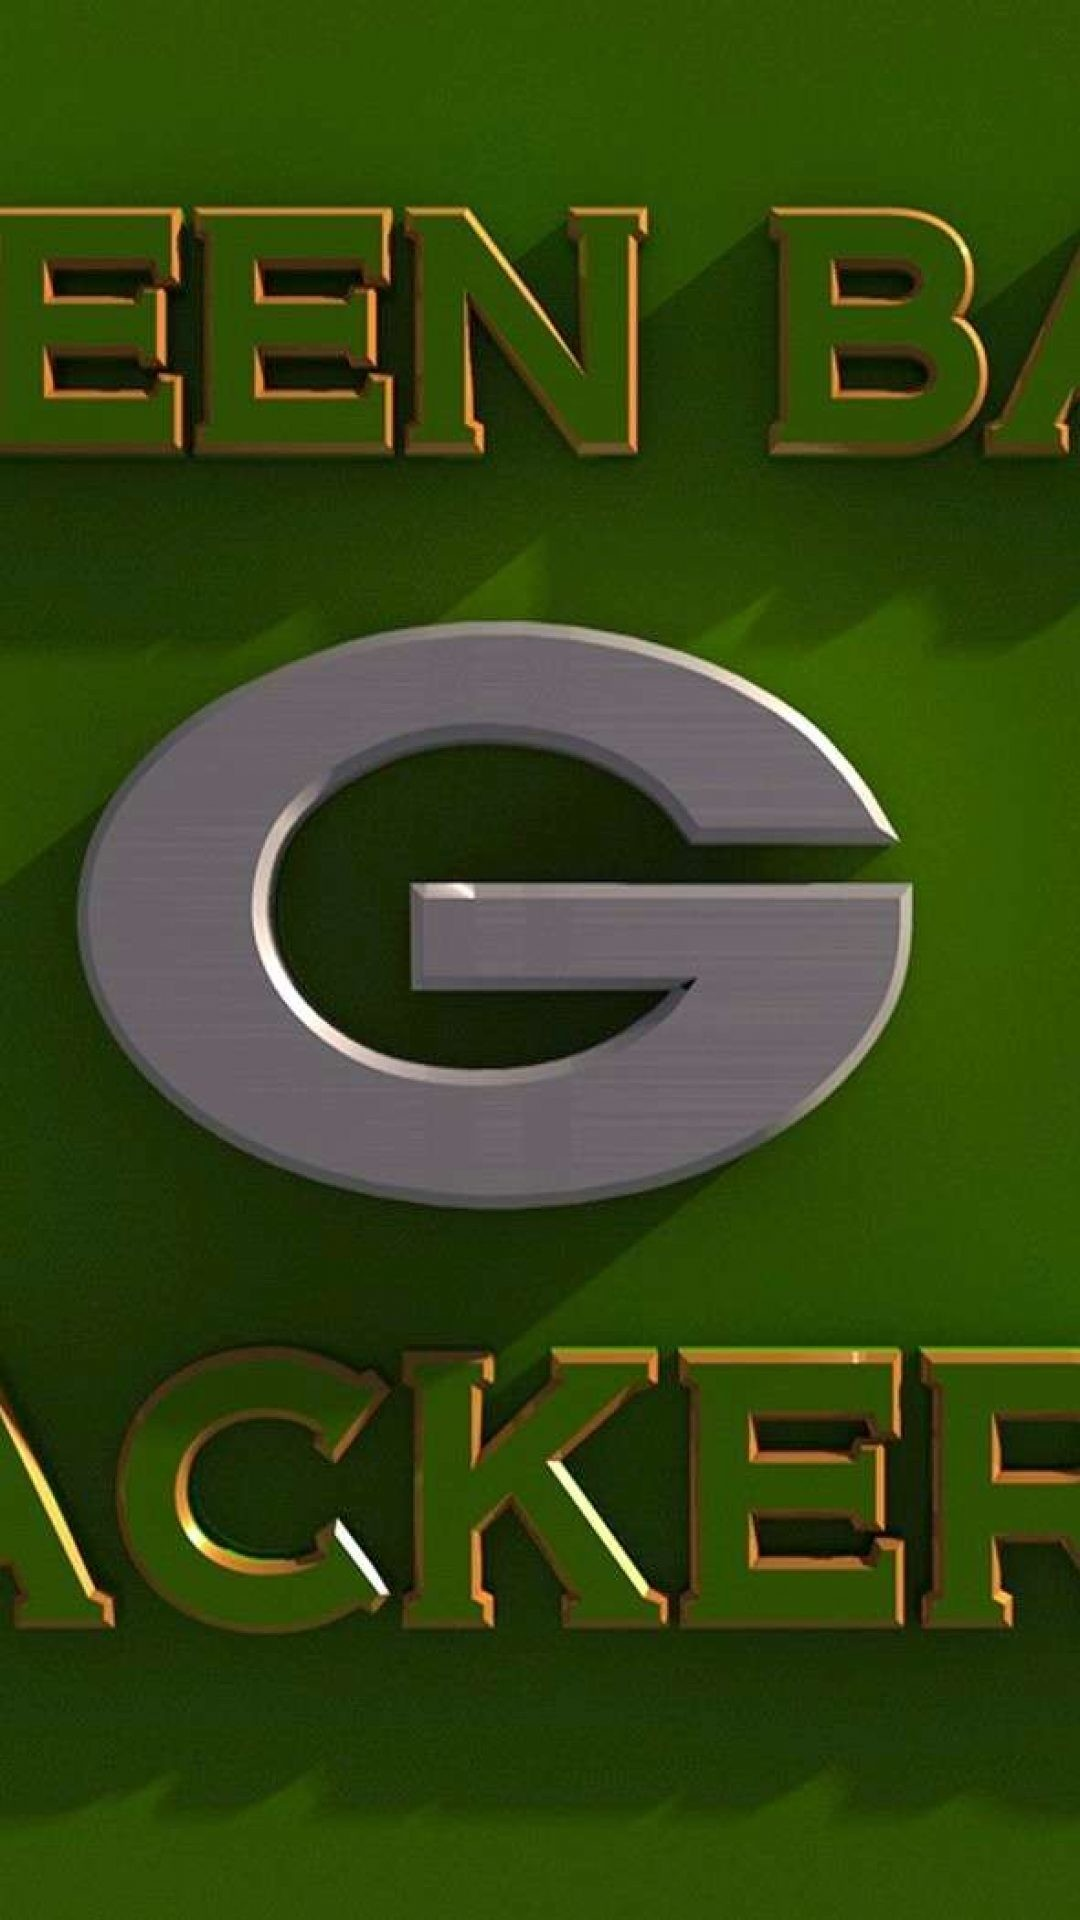 Wallpaper Full Color Hd Green Bay Packers Wallpaper 65 Images